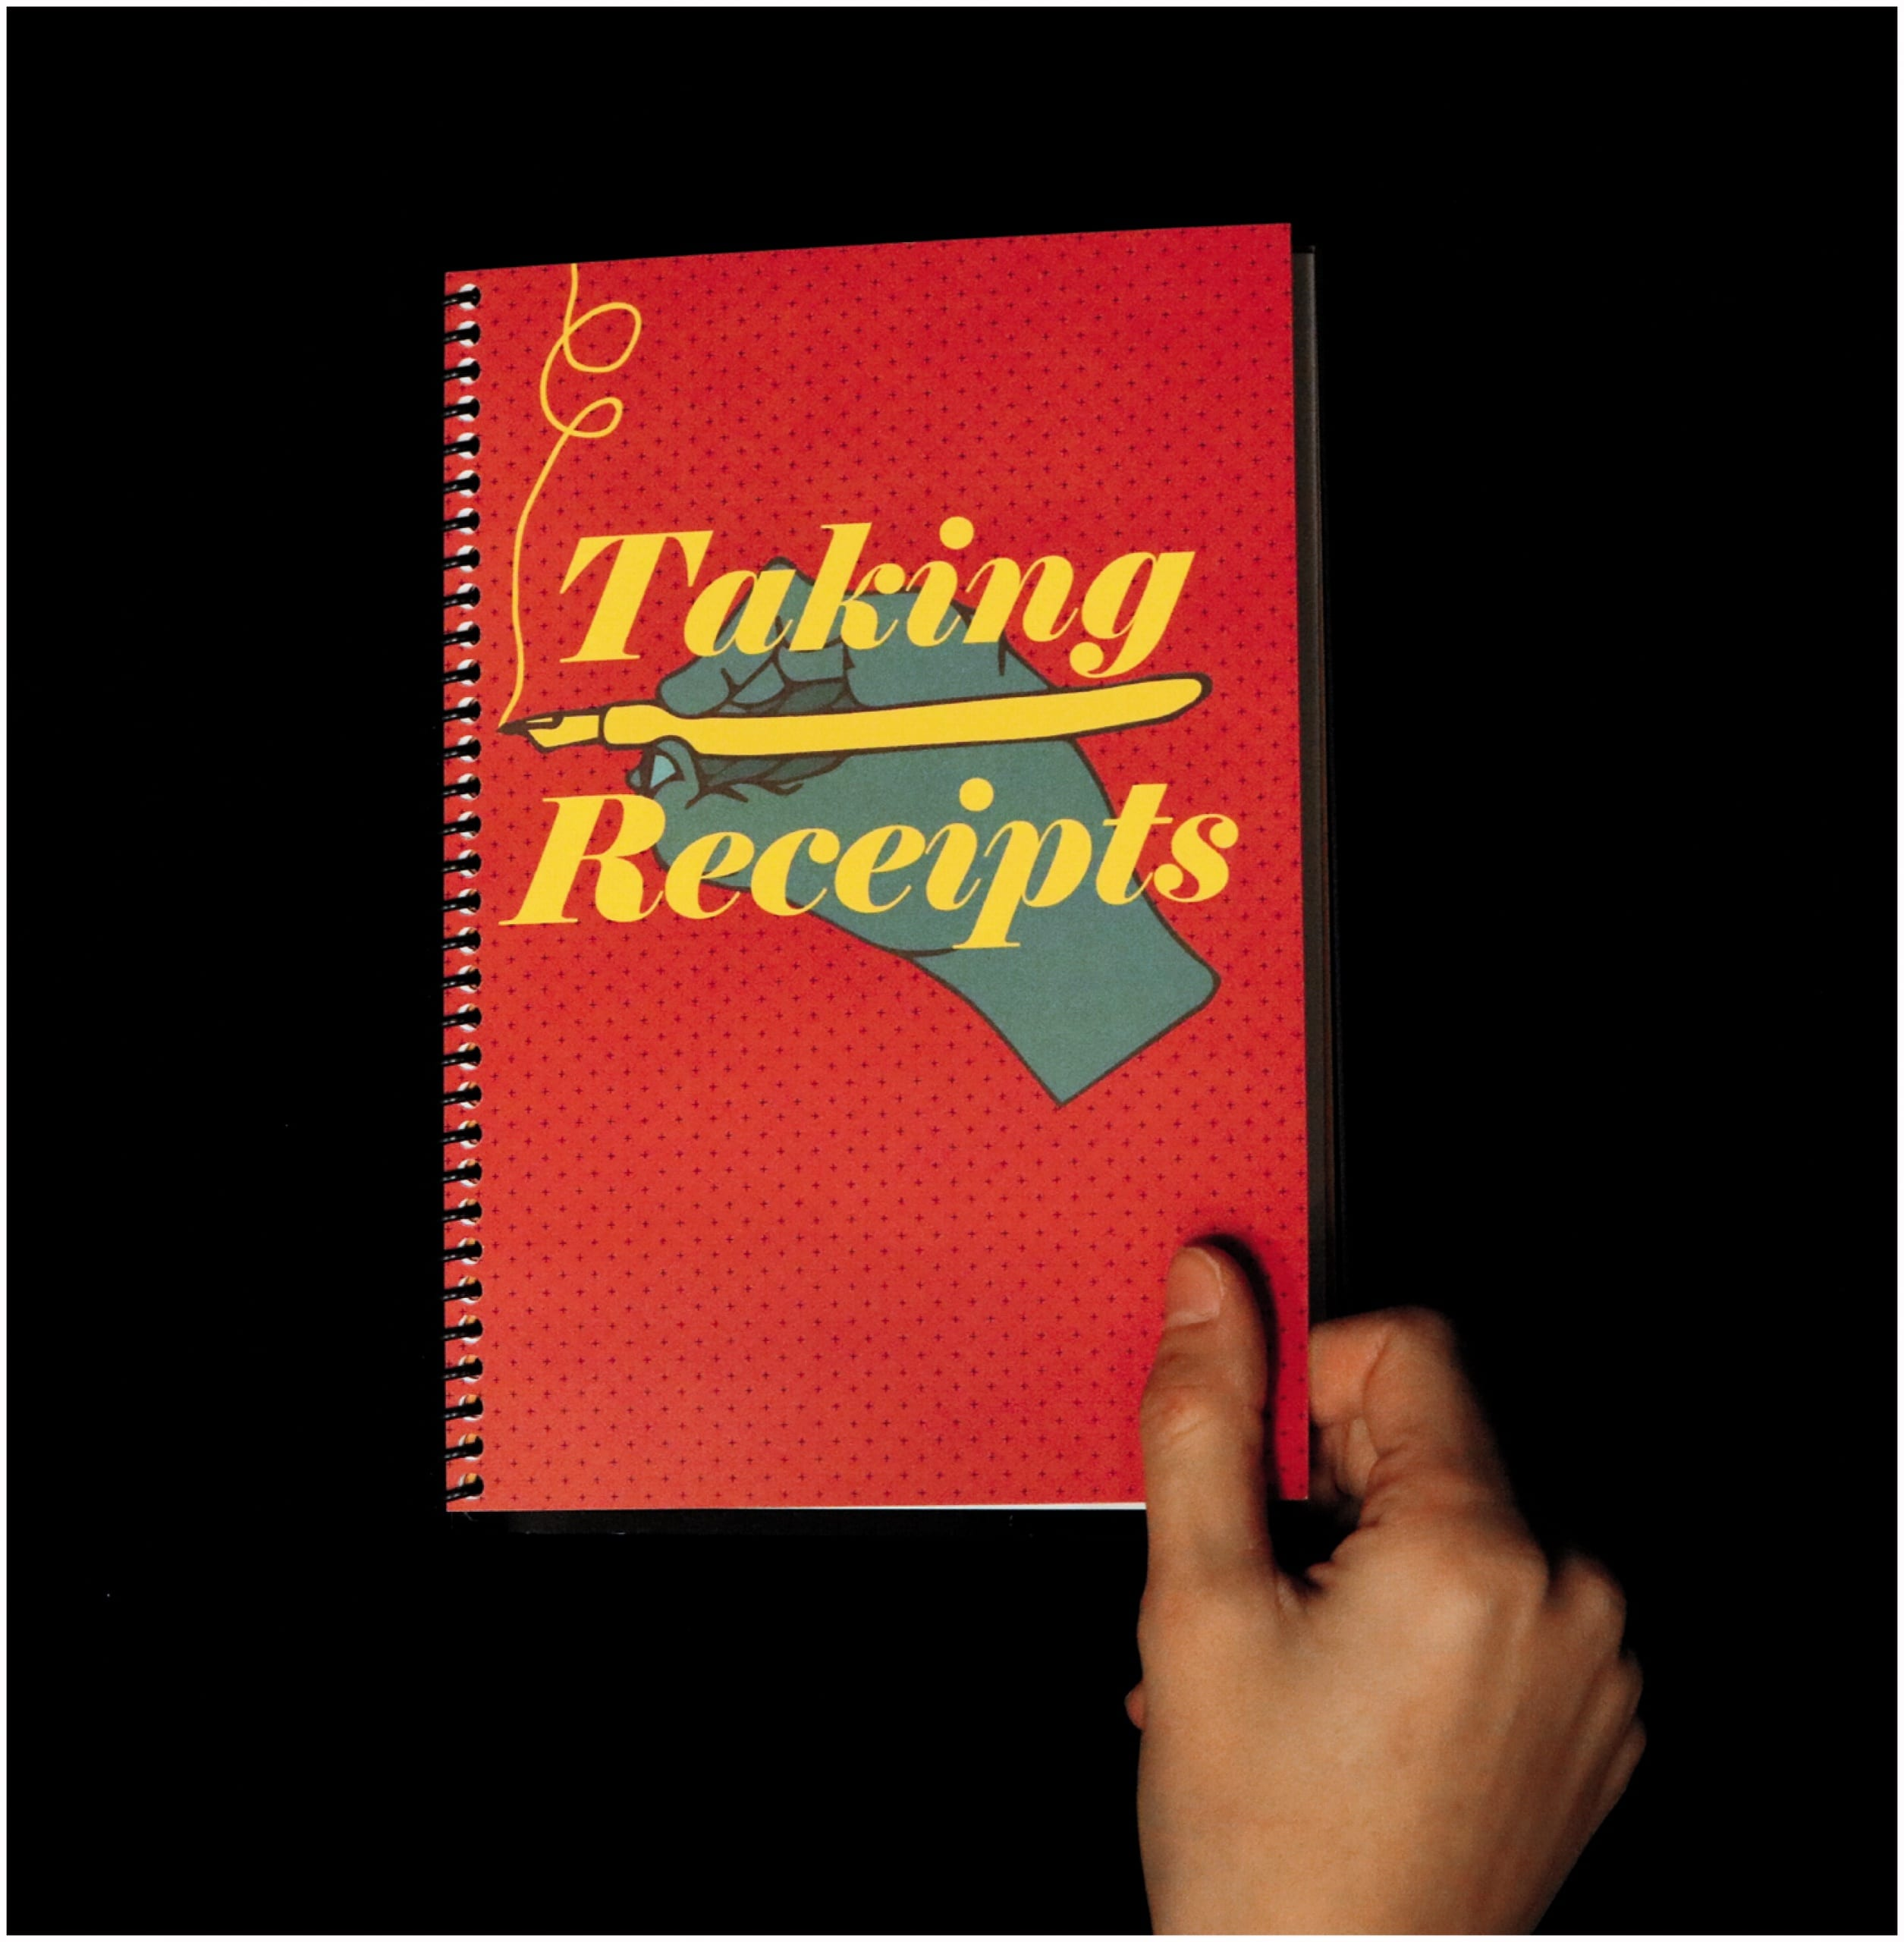 """Color photo of a hand opening a spiral-bound notebook. The cover of the notebook is red, and featuers an illustration of a hand drawing something with a yellow pen. The text on the front reads """"Taking Receipts."""""""